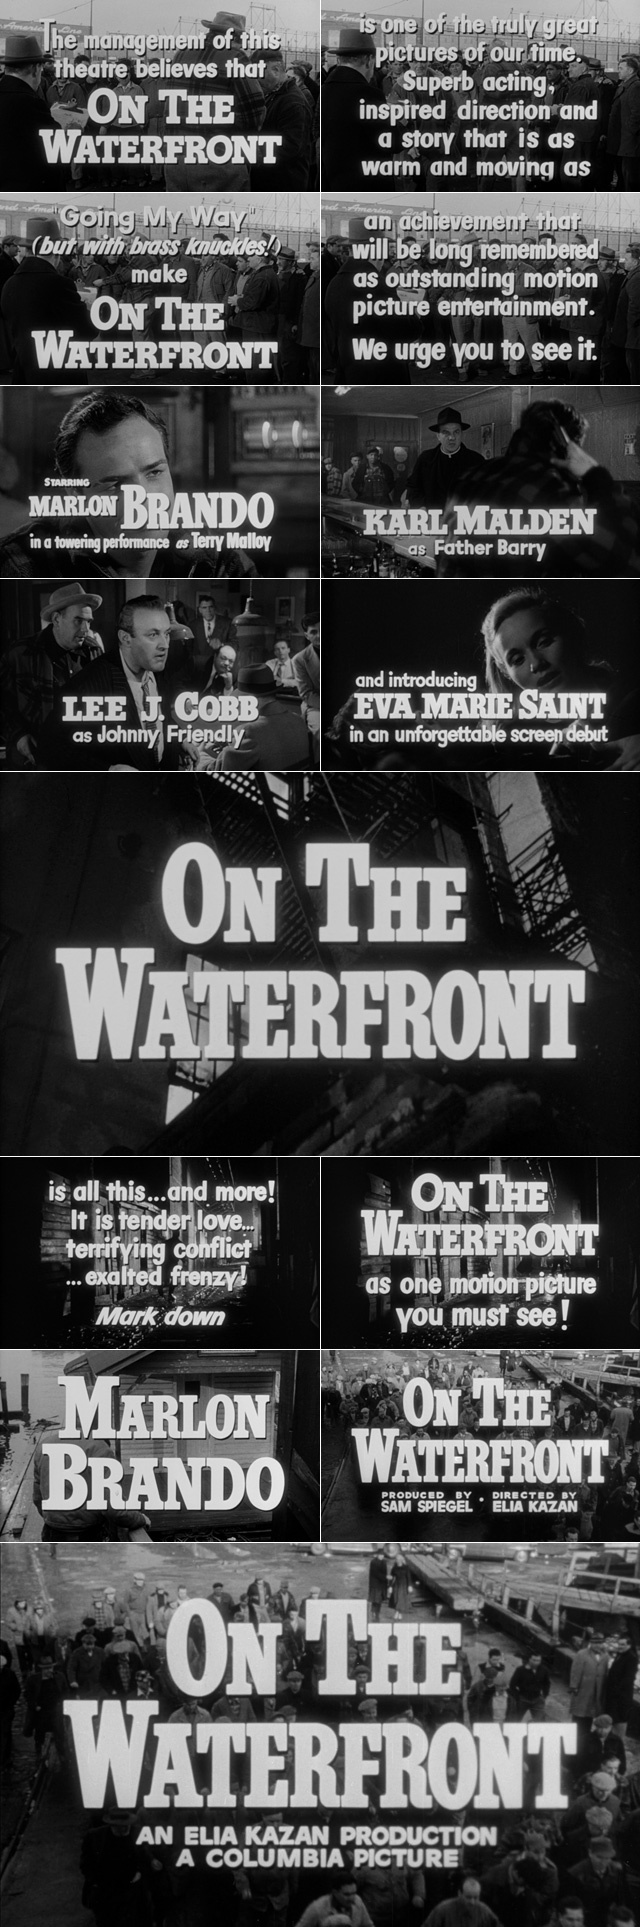 an assessment of the movie on the waterfront by elia kazan Elia kazan essay examples 12 total  an assessment of the movie, on the waterfront by elia  the portrayal of real human conditions in elia kazan directed movie.